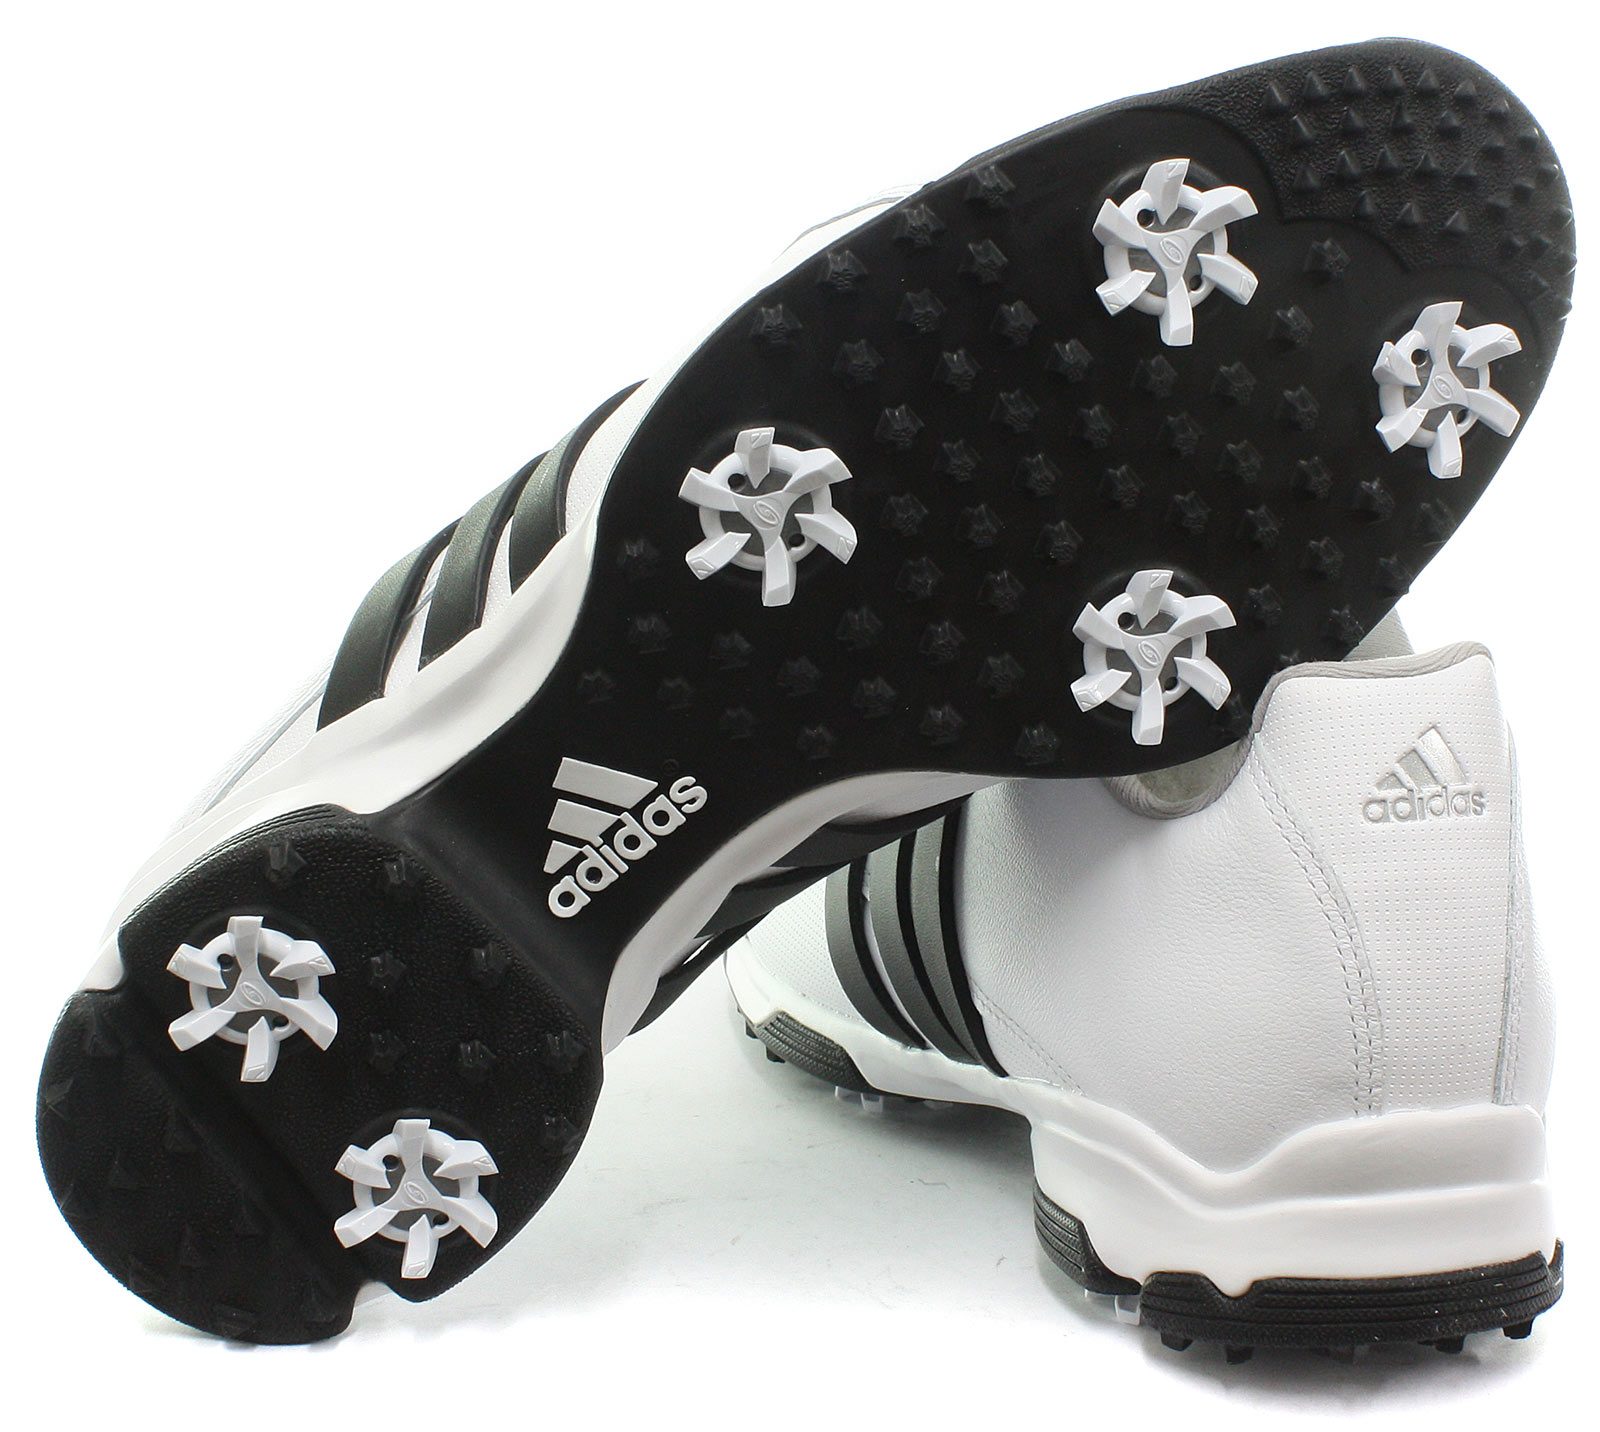 Adidas Pure  TRX WD Wide Fit  Pure Uomo Golf Schuhes / Trainers ALL SIZES db1885